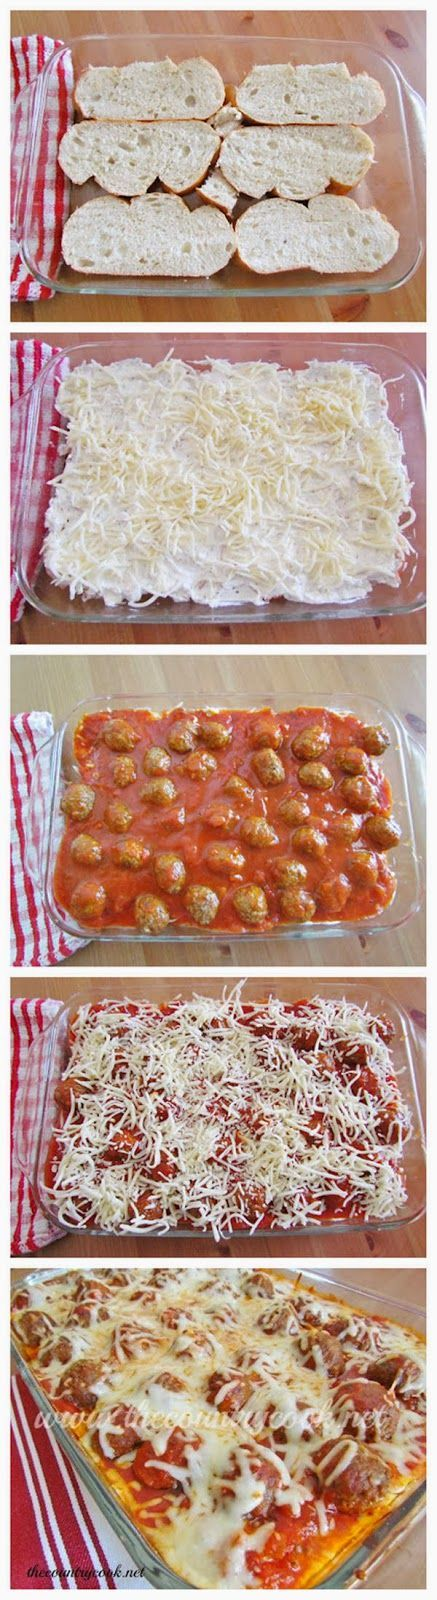 "Meatball Sub Casserole - great meal for a crowd! ""I made this two nights ago. AMAZING!!!!!"" 